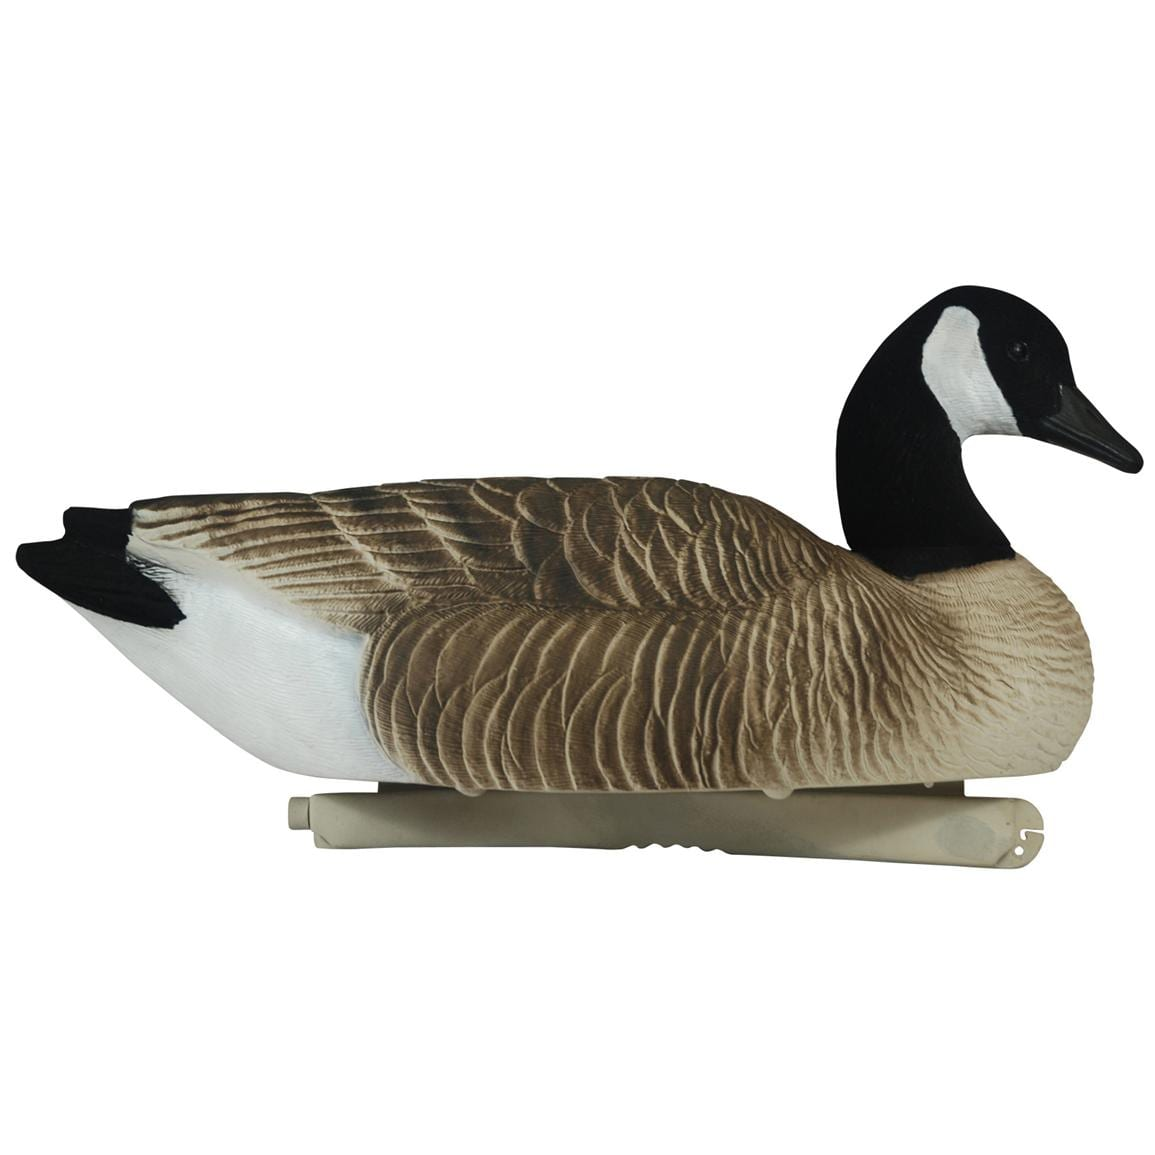 What Paint To Use On Goose Decoys